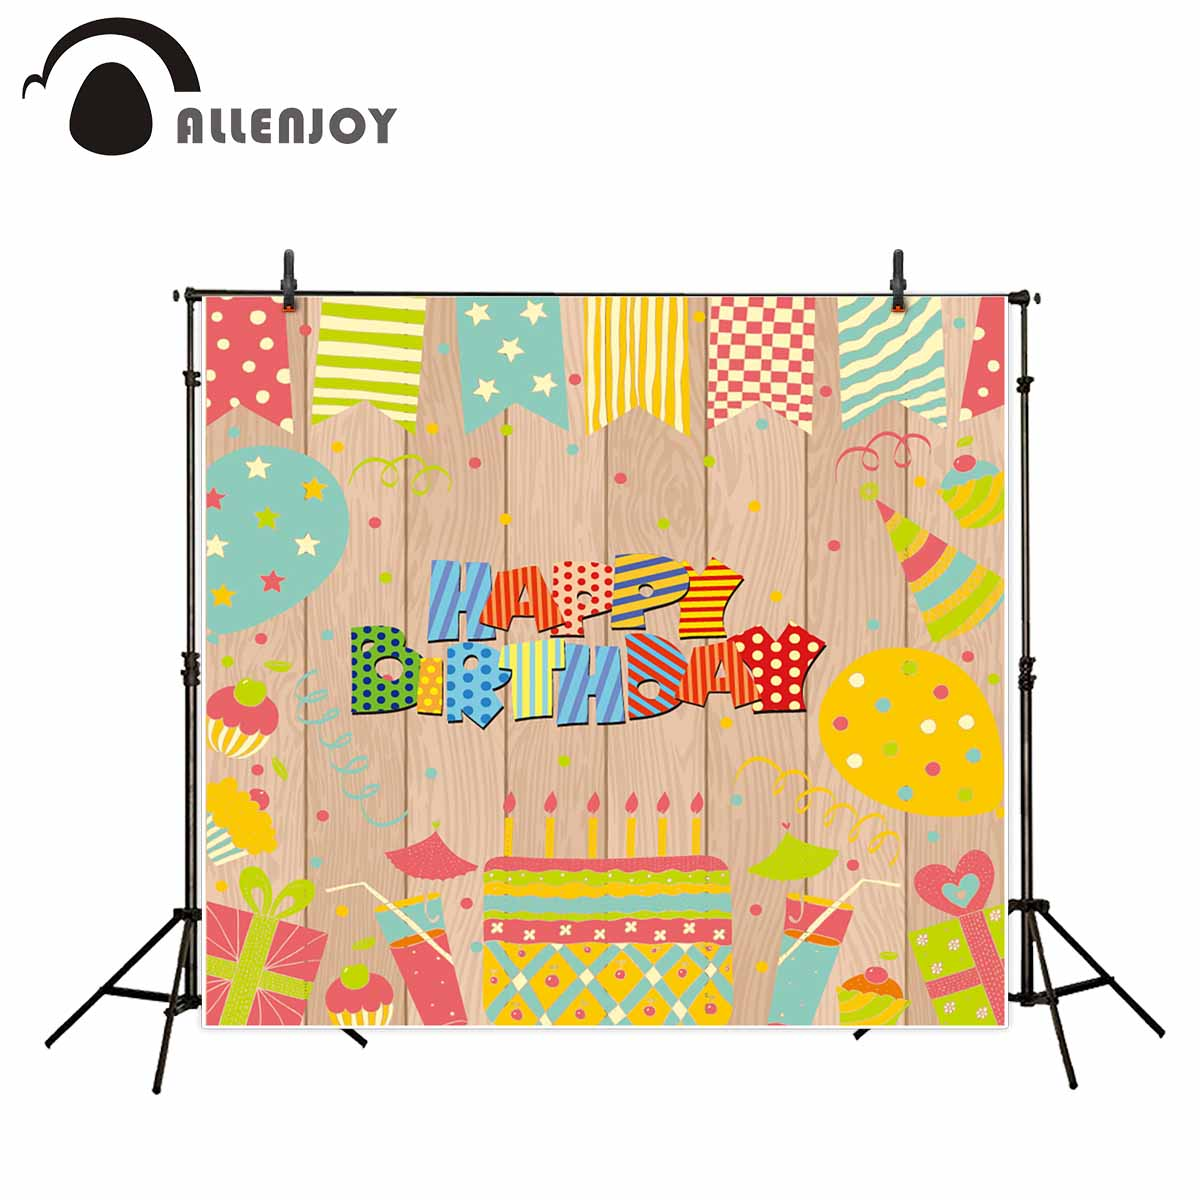 Allenjoy photo background Wooden board Birthday Cake Balloons Party backdrop banners camera fotografica profissional